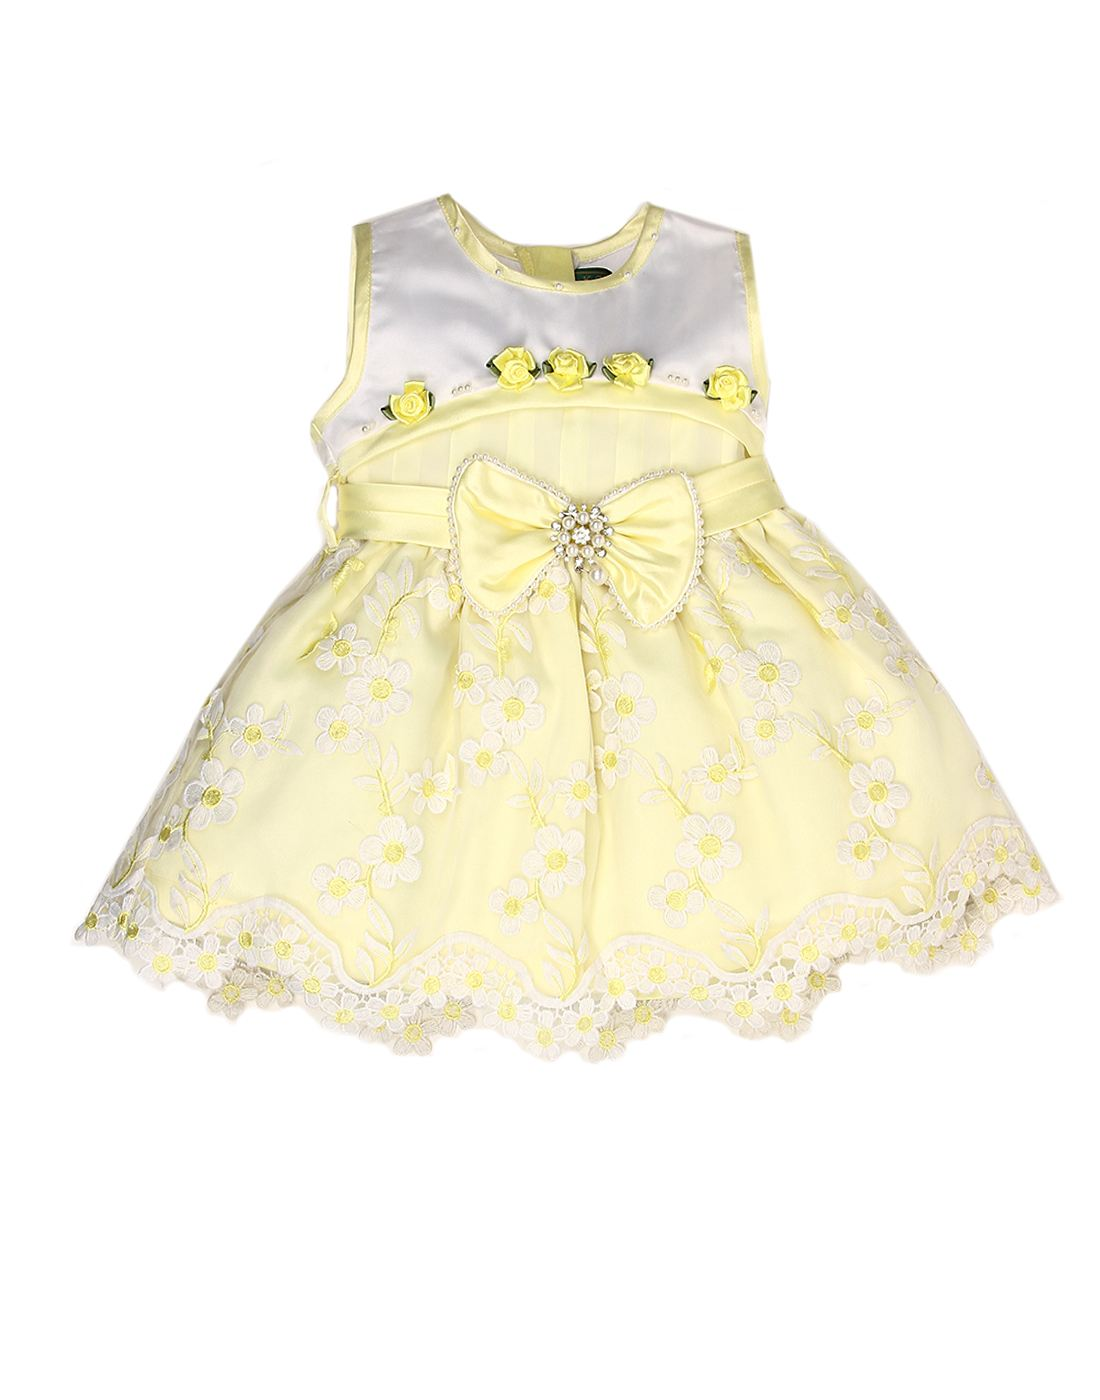 K.C.O 89 Infant Girls Party Wear Embellished Sleeveless Frock